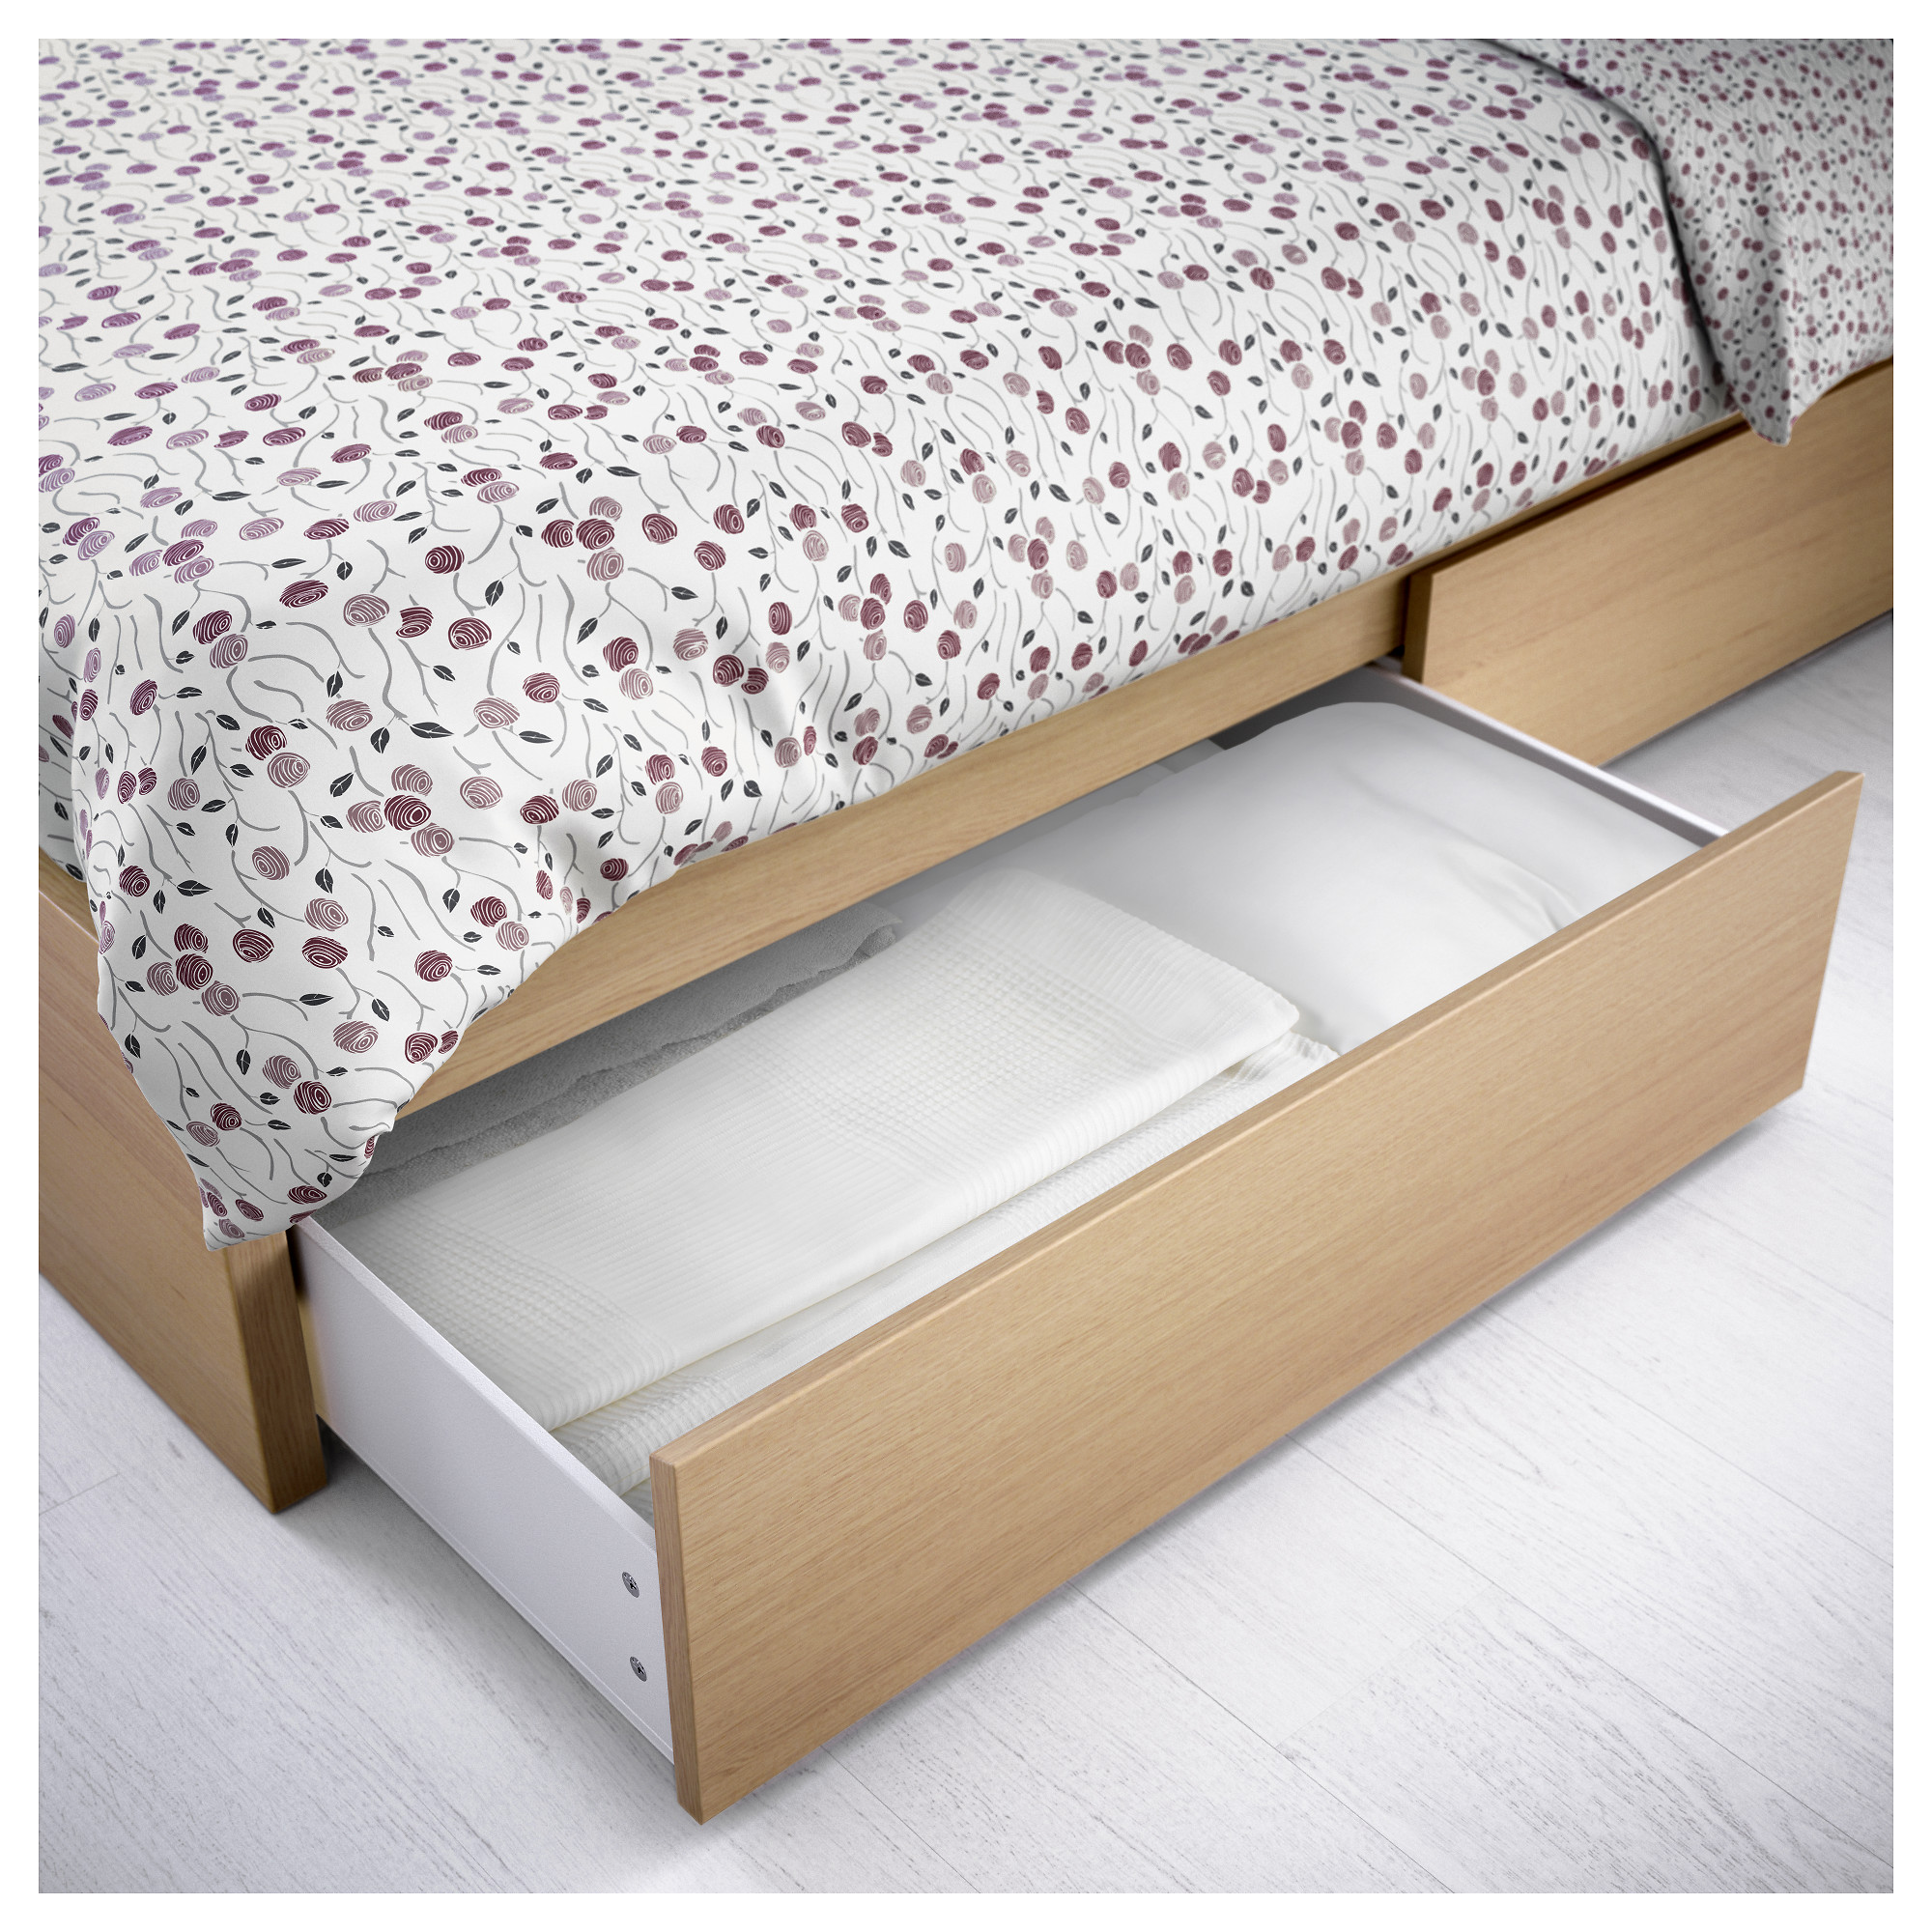 MALM High bed frame 4 storage boxes IKEA